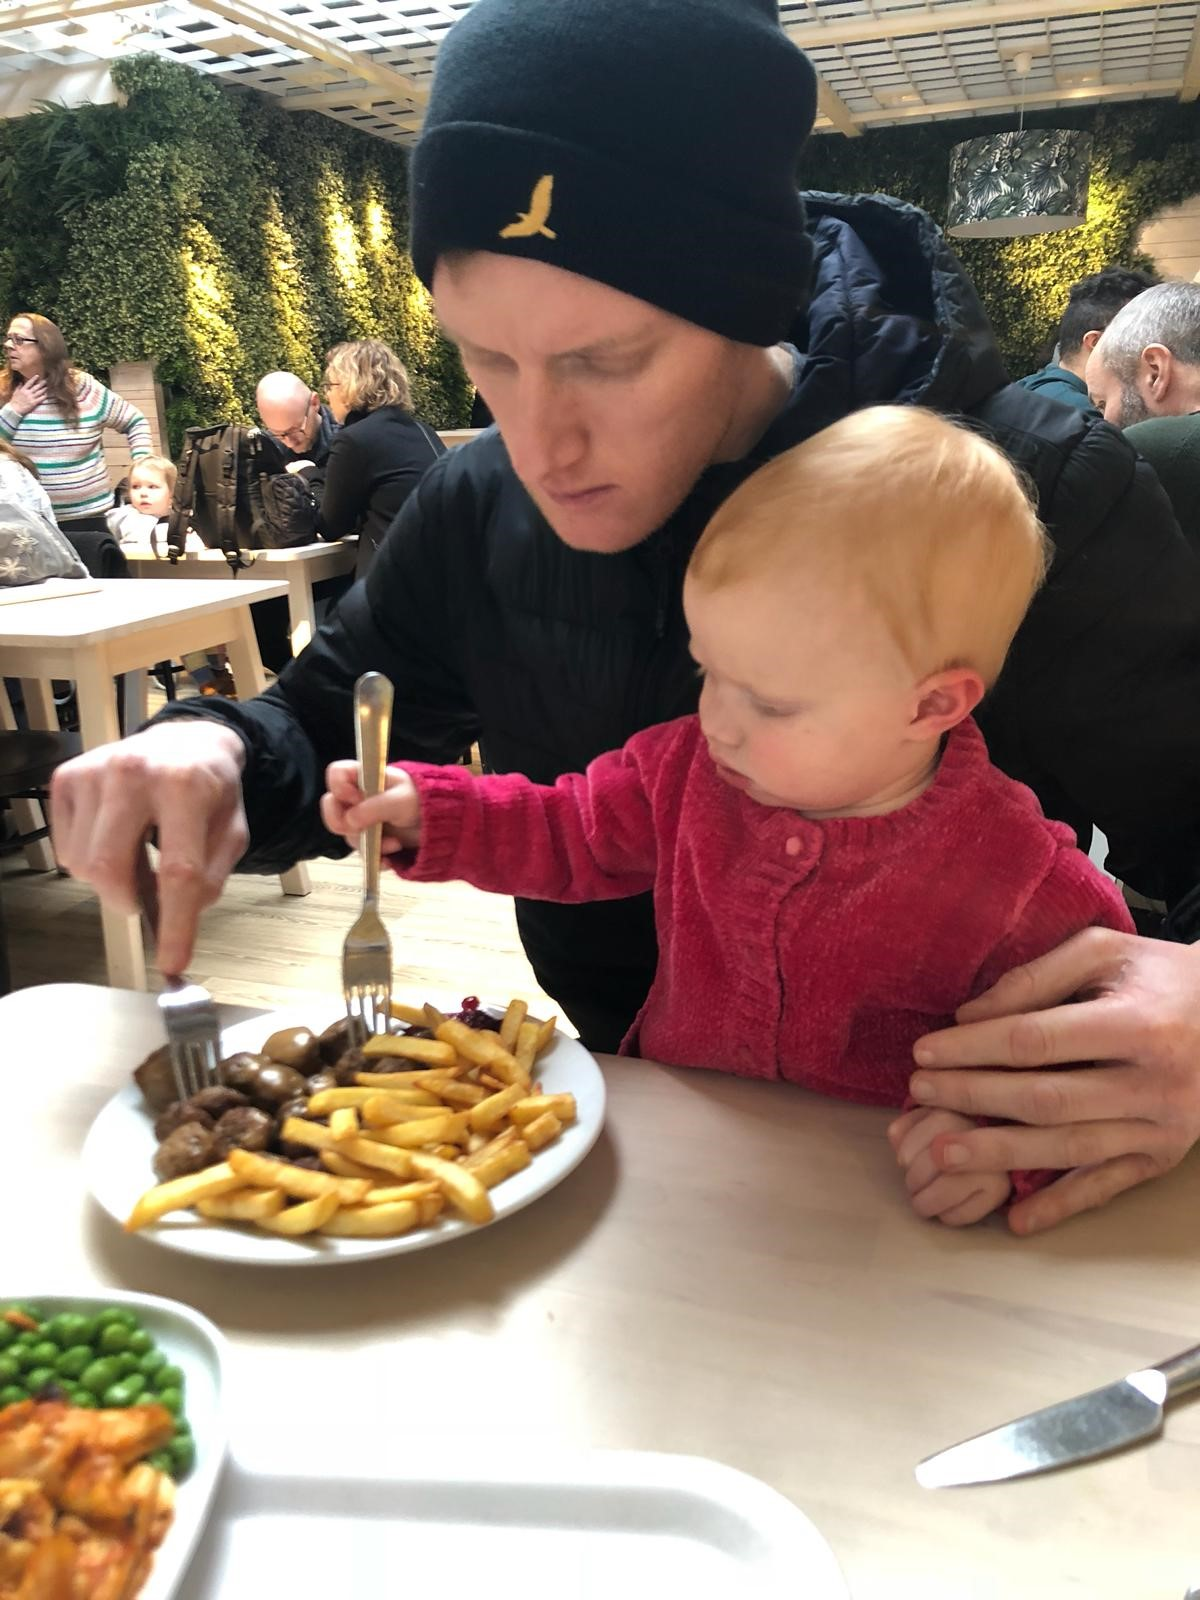 My daughter, Lottie, and I, were concentrating very hard at lunch. It was a match made in heaven… I ate the high fat, low carb meatballs. And Lottie at the low fat, high carb chips!